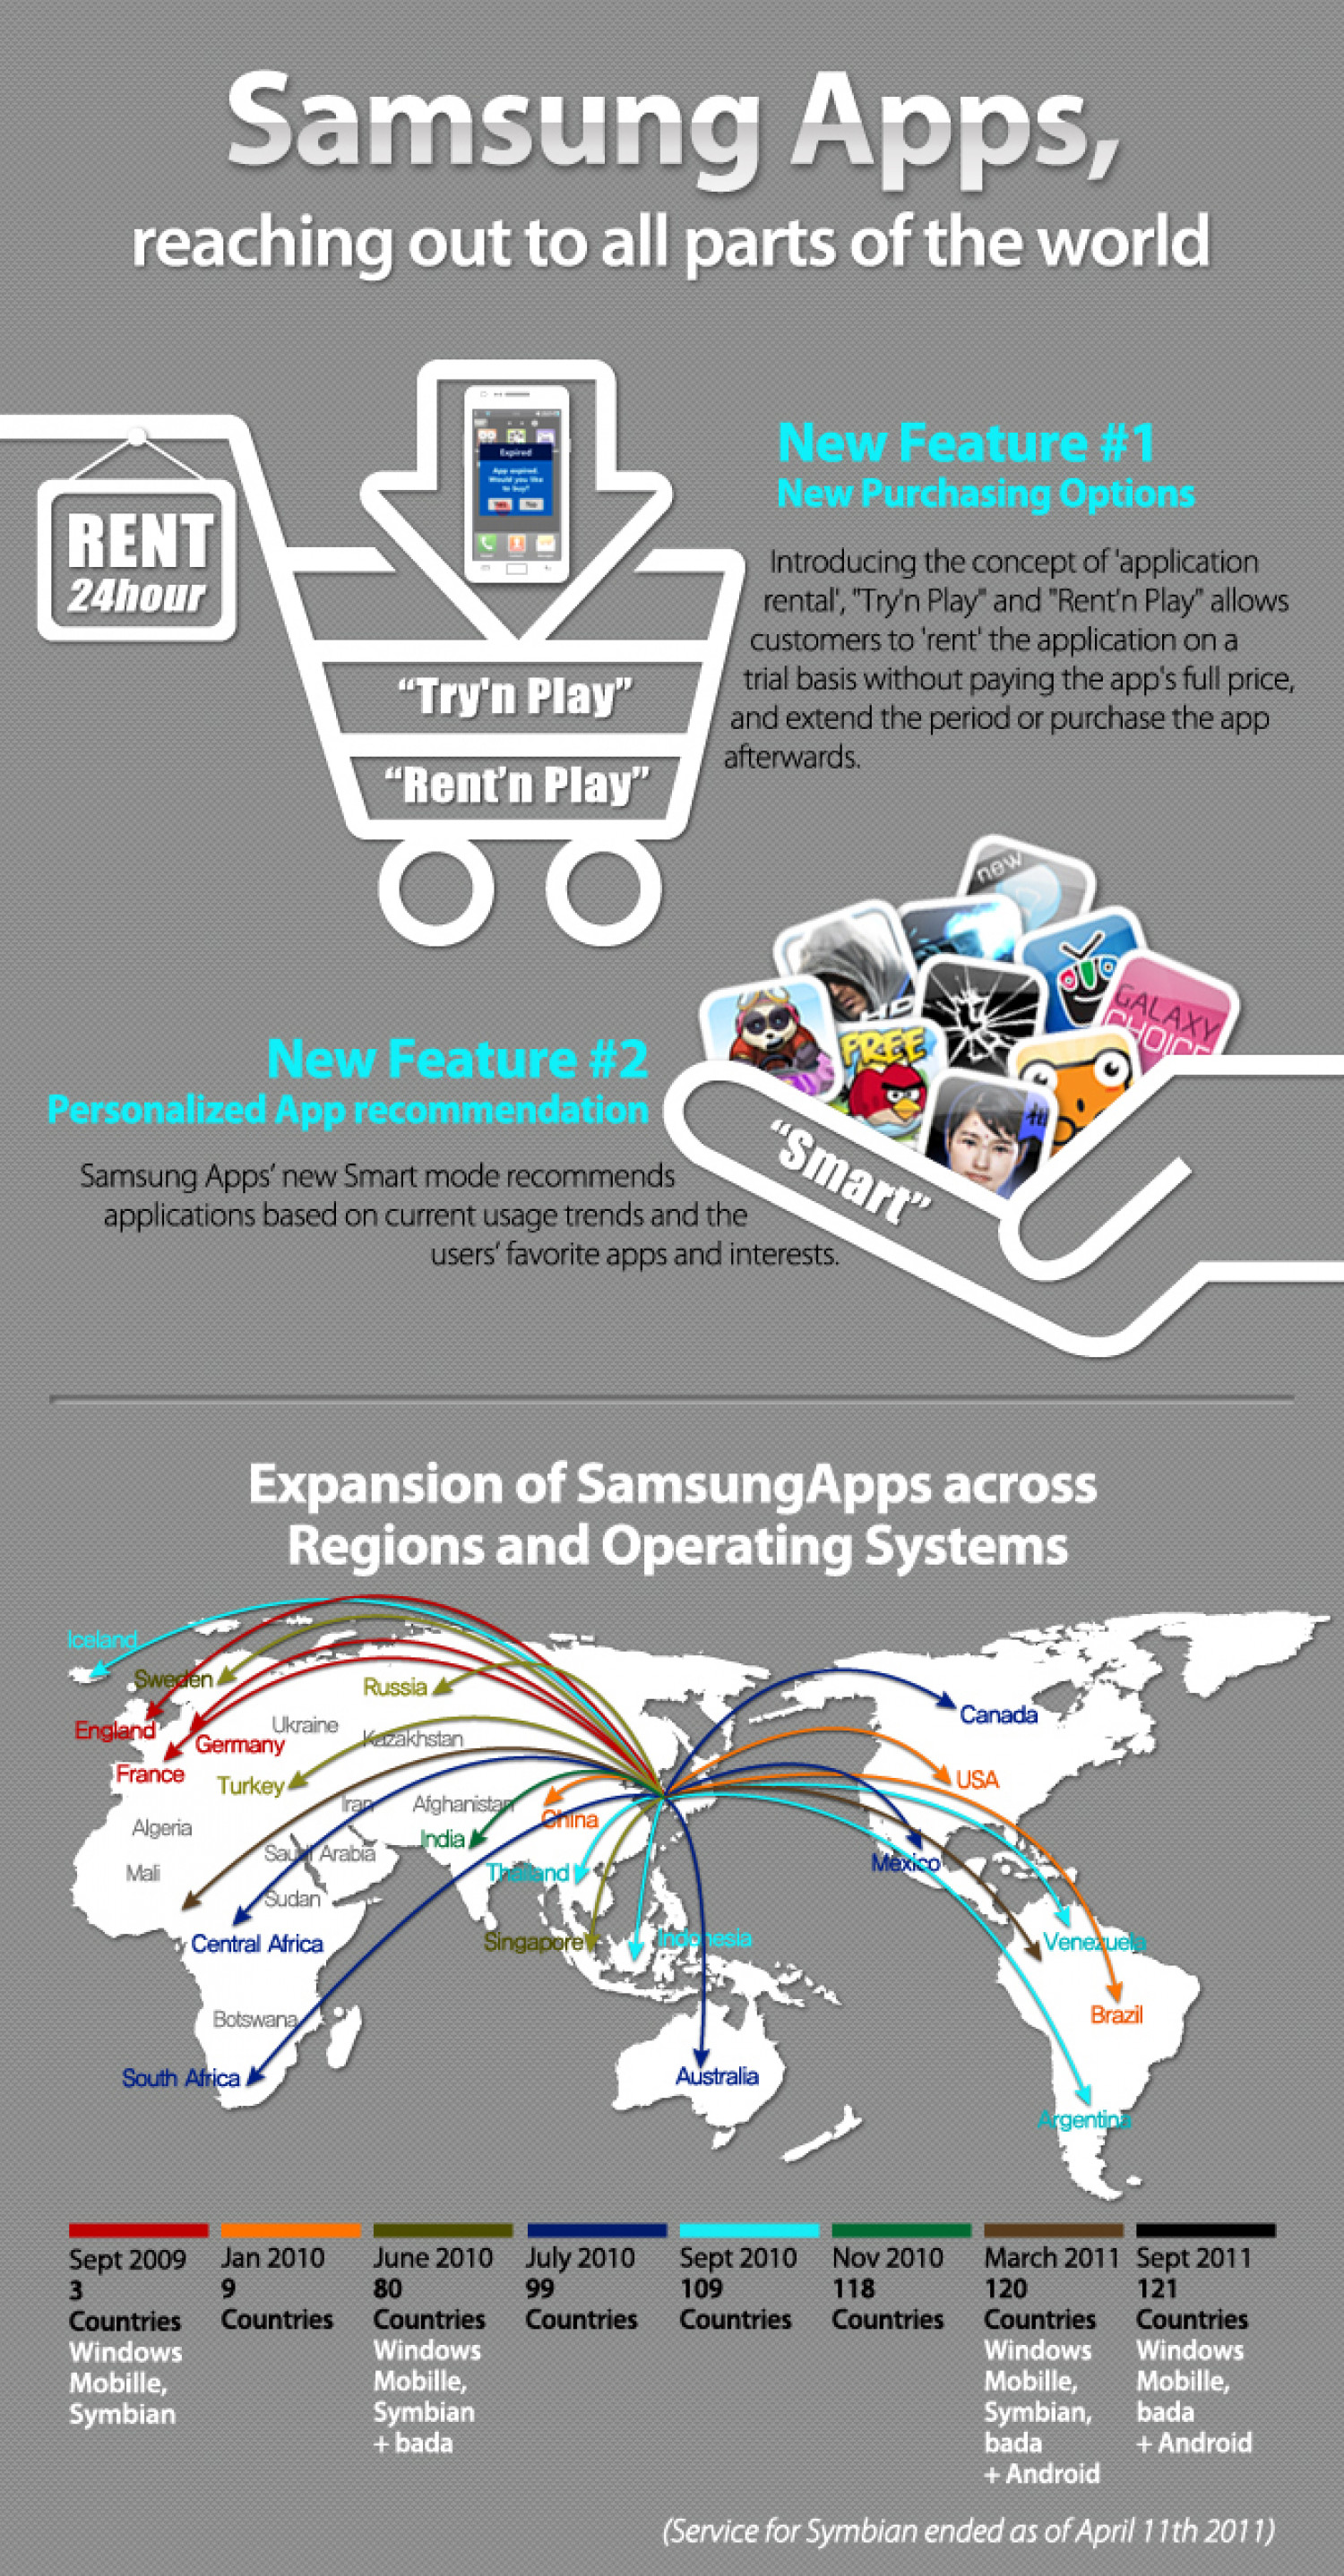 Samsung Apps, reaching out to all parts of the world Infographic